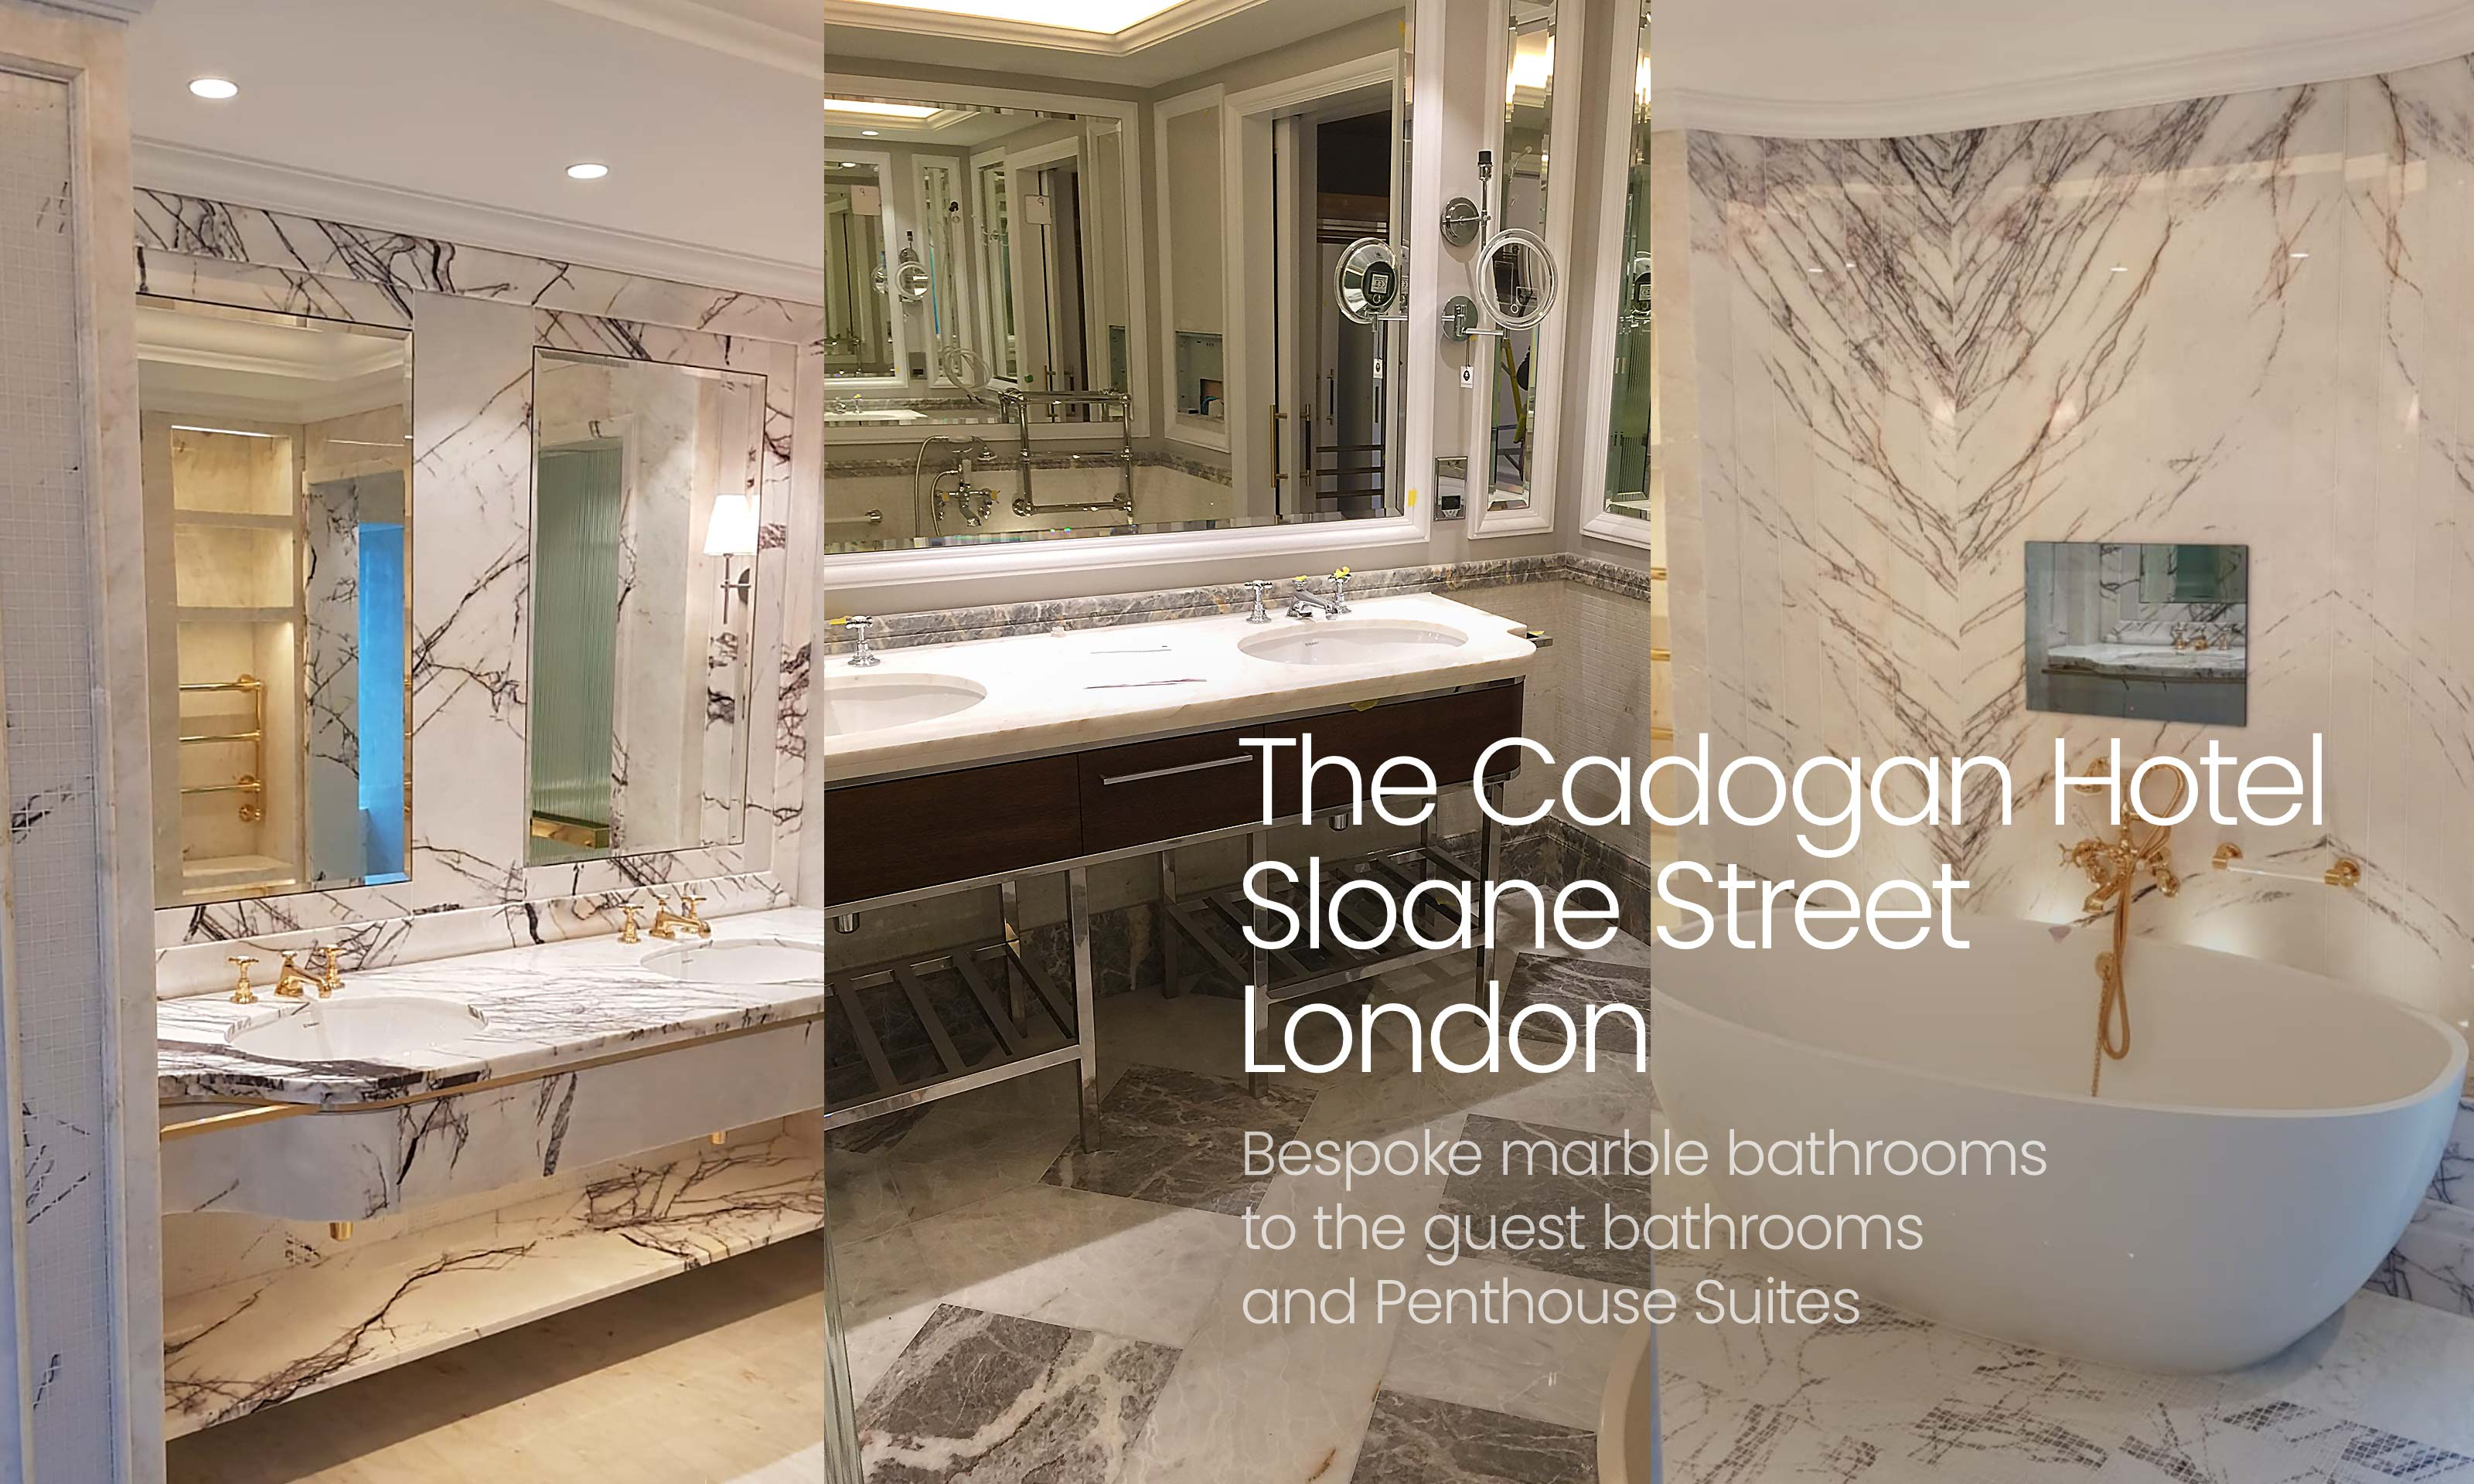 The Cadogan Hotel, Sloane Street, London